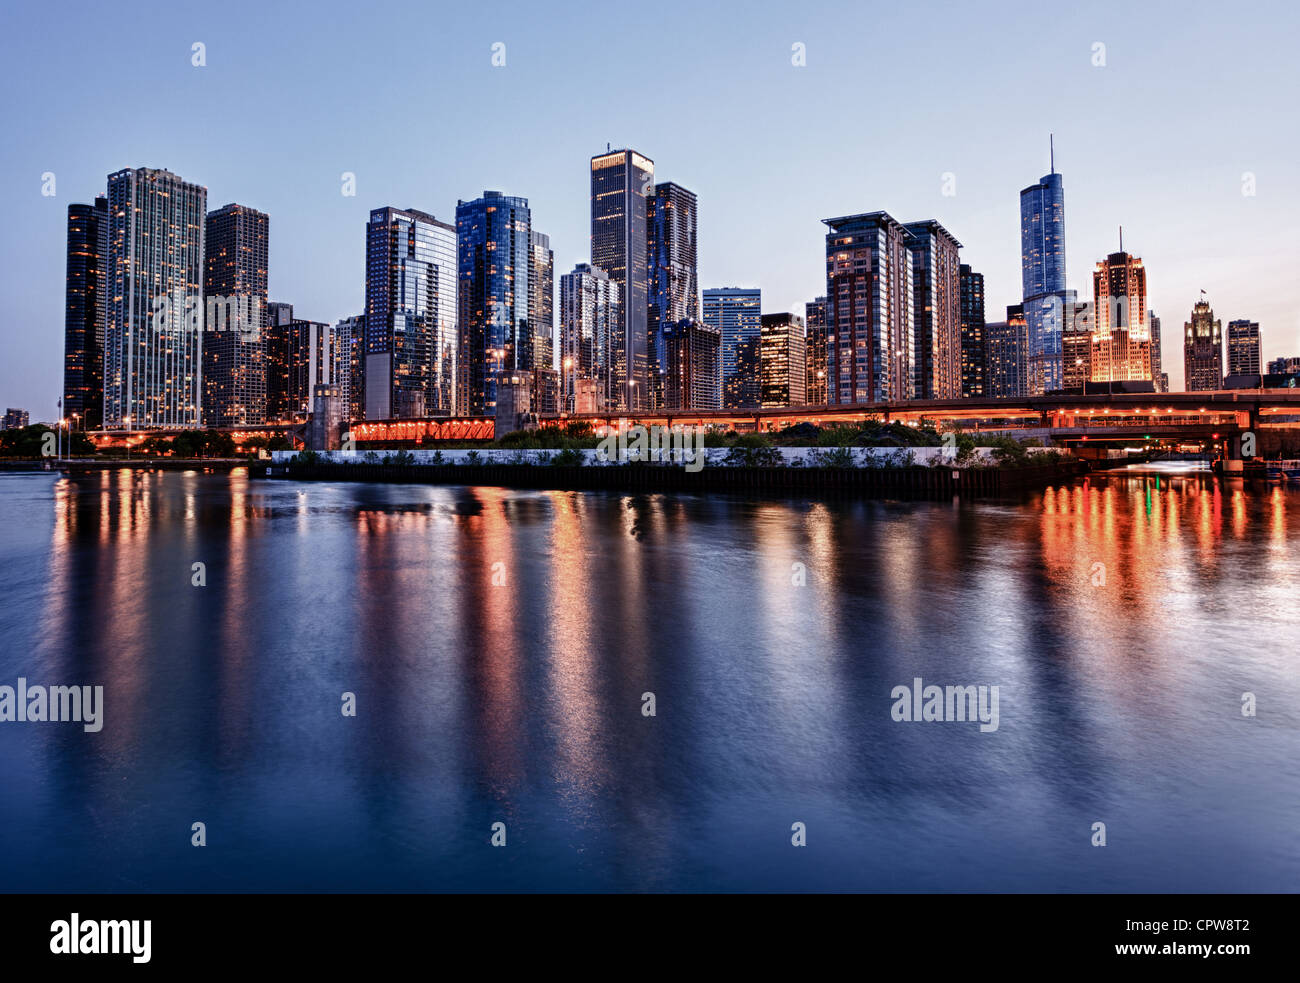 Chicago skyline - from the Navy Pier at sunset, Chicago, IL, USA - Stock Image